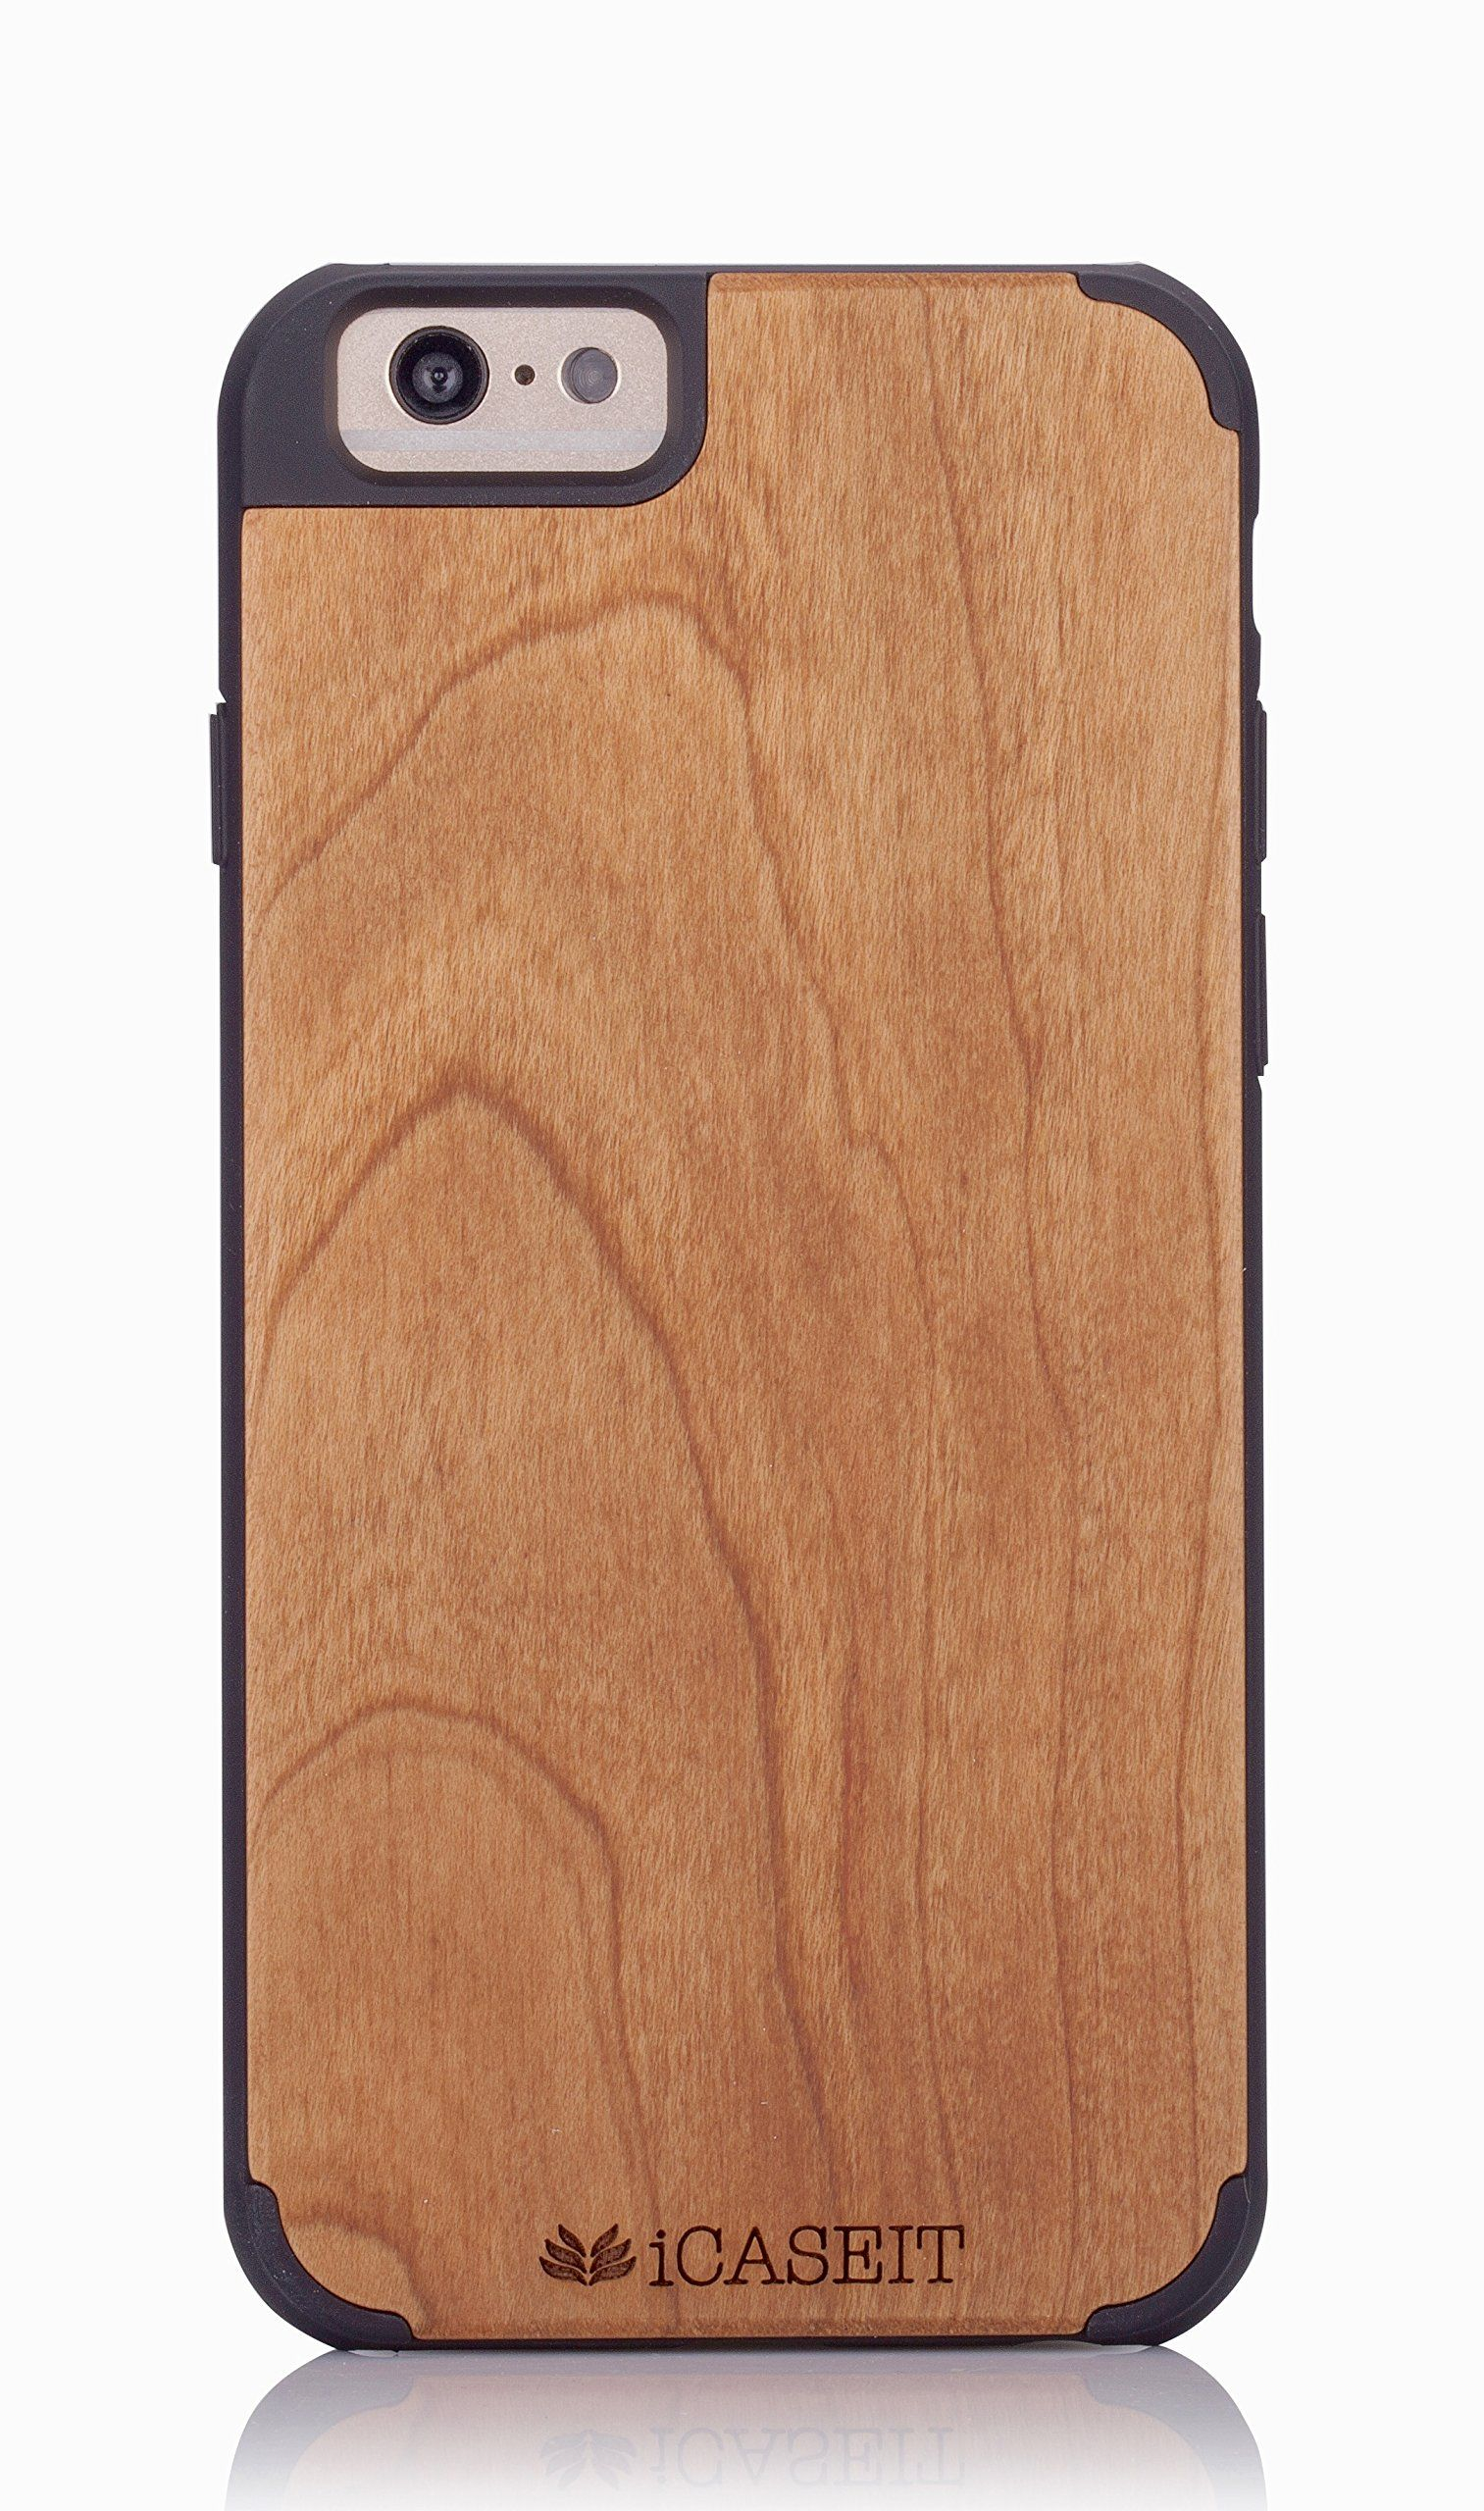 """iCASEIT Wood iPhone Case - Genuinely Natural, Unique & Premium quality for iPhone 6 (4.7"""" Display) - Cherry / Black"""